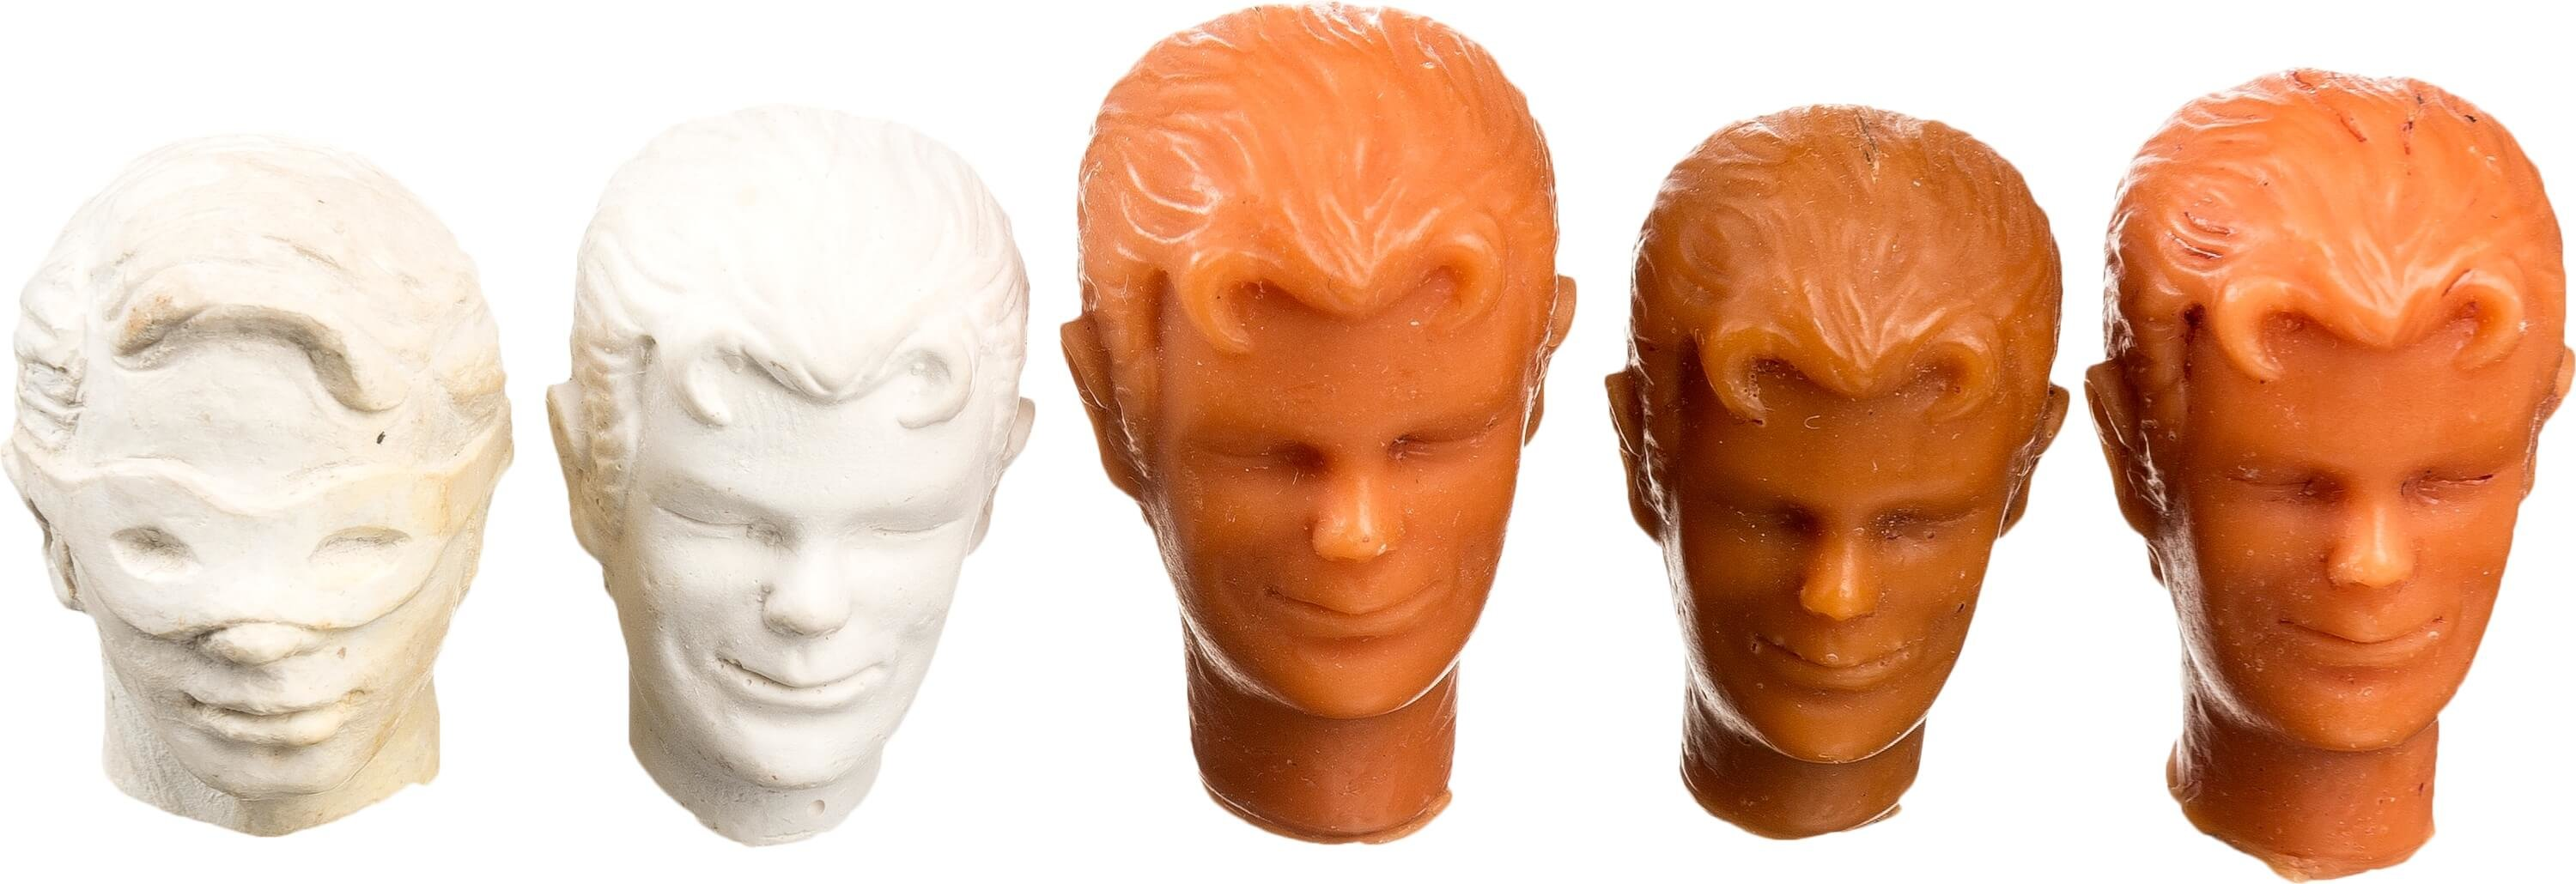 Original mego head sculpt prototype for Robin from the Mego World's Greatest Superheroes.